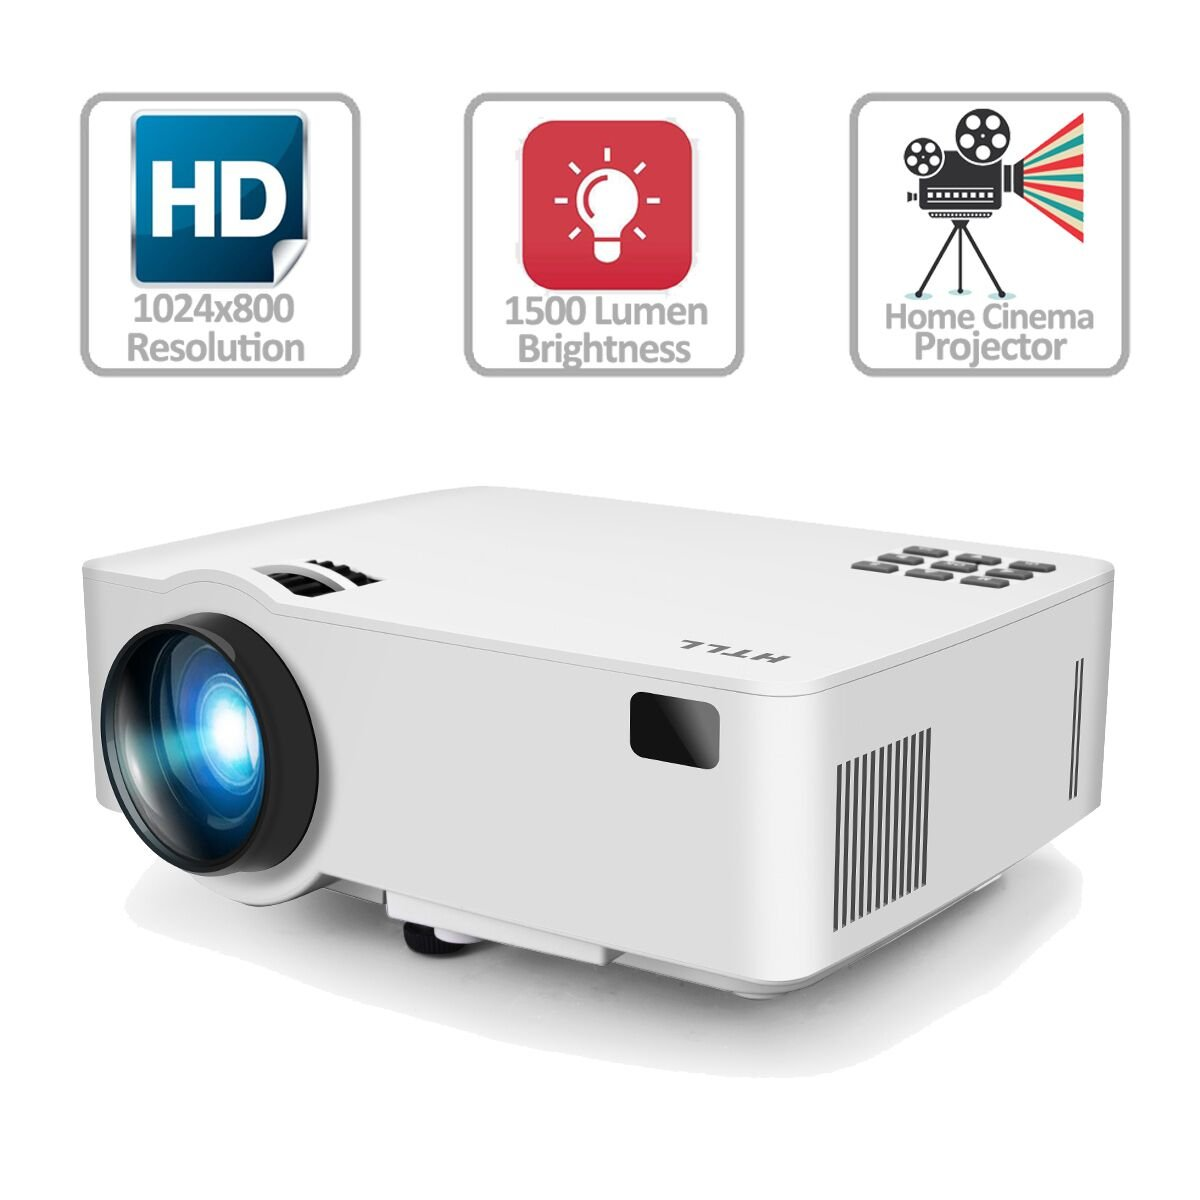 Best Home Theater Projector 2020.Top 10 Best Gaming 1080p Video Projectors 2018 2020 On